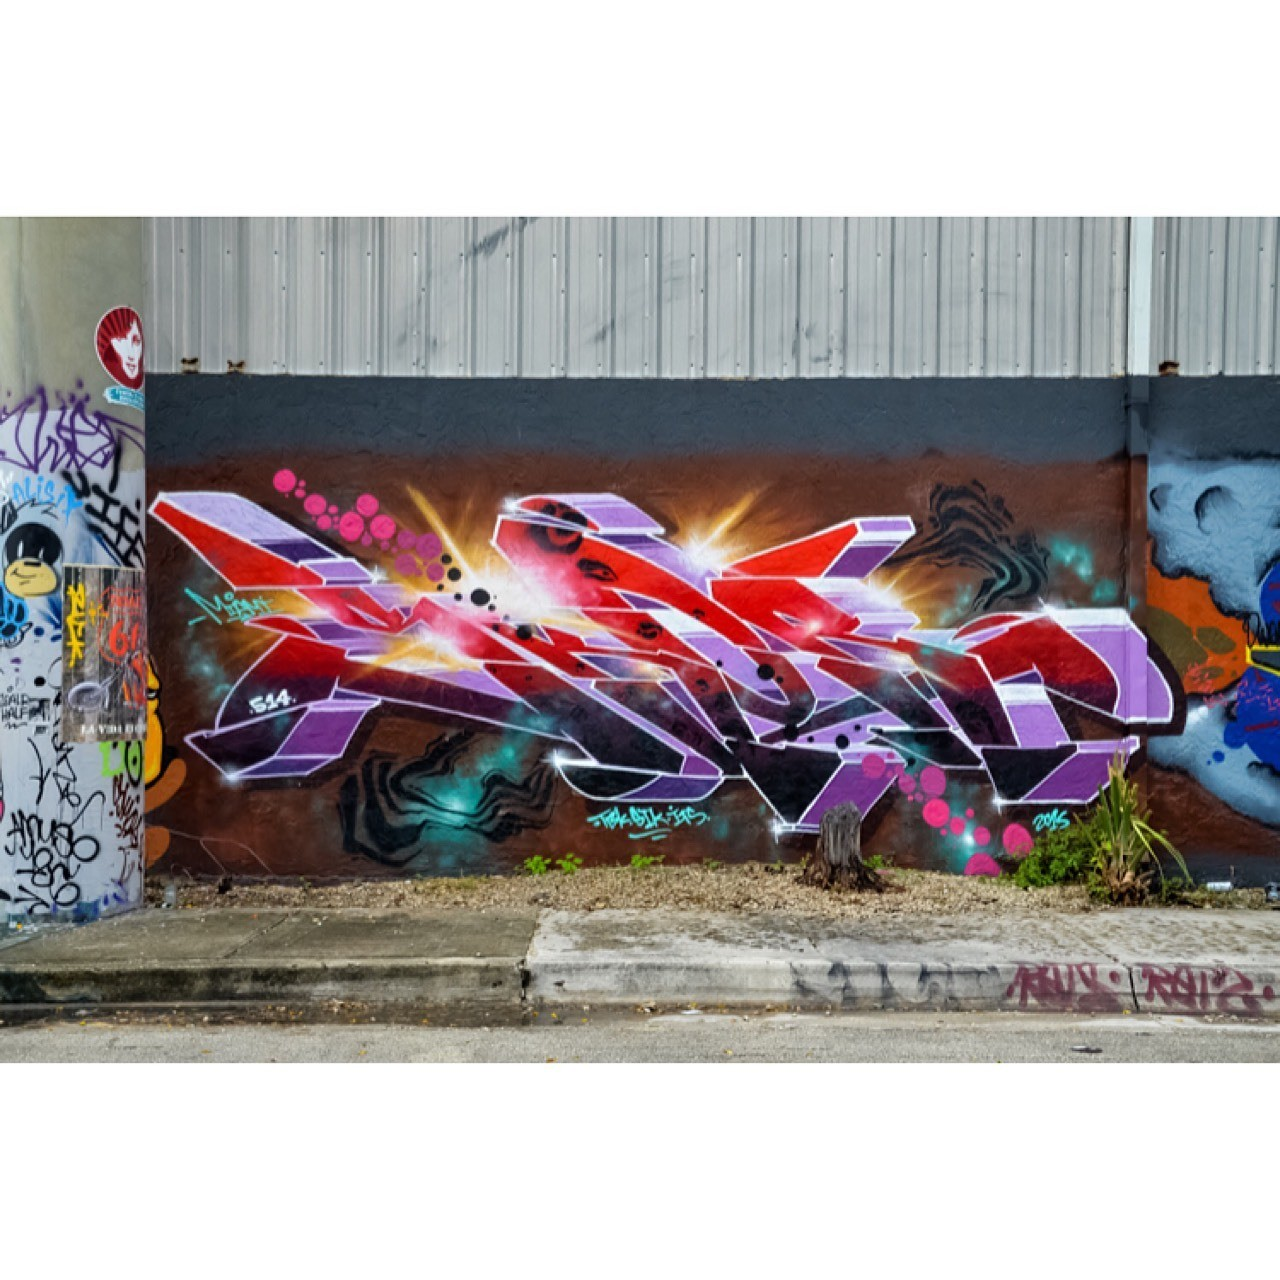 By SKOR (SIK) (ITS) (TBK)